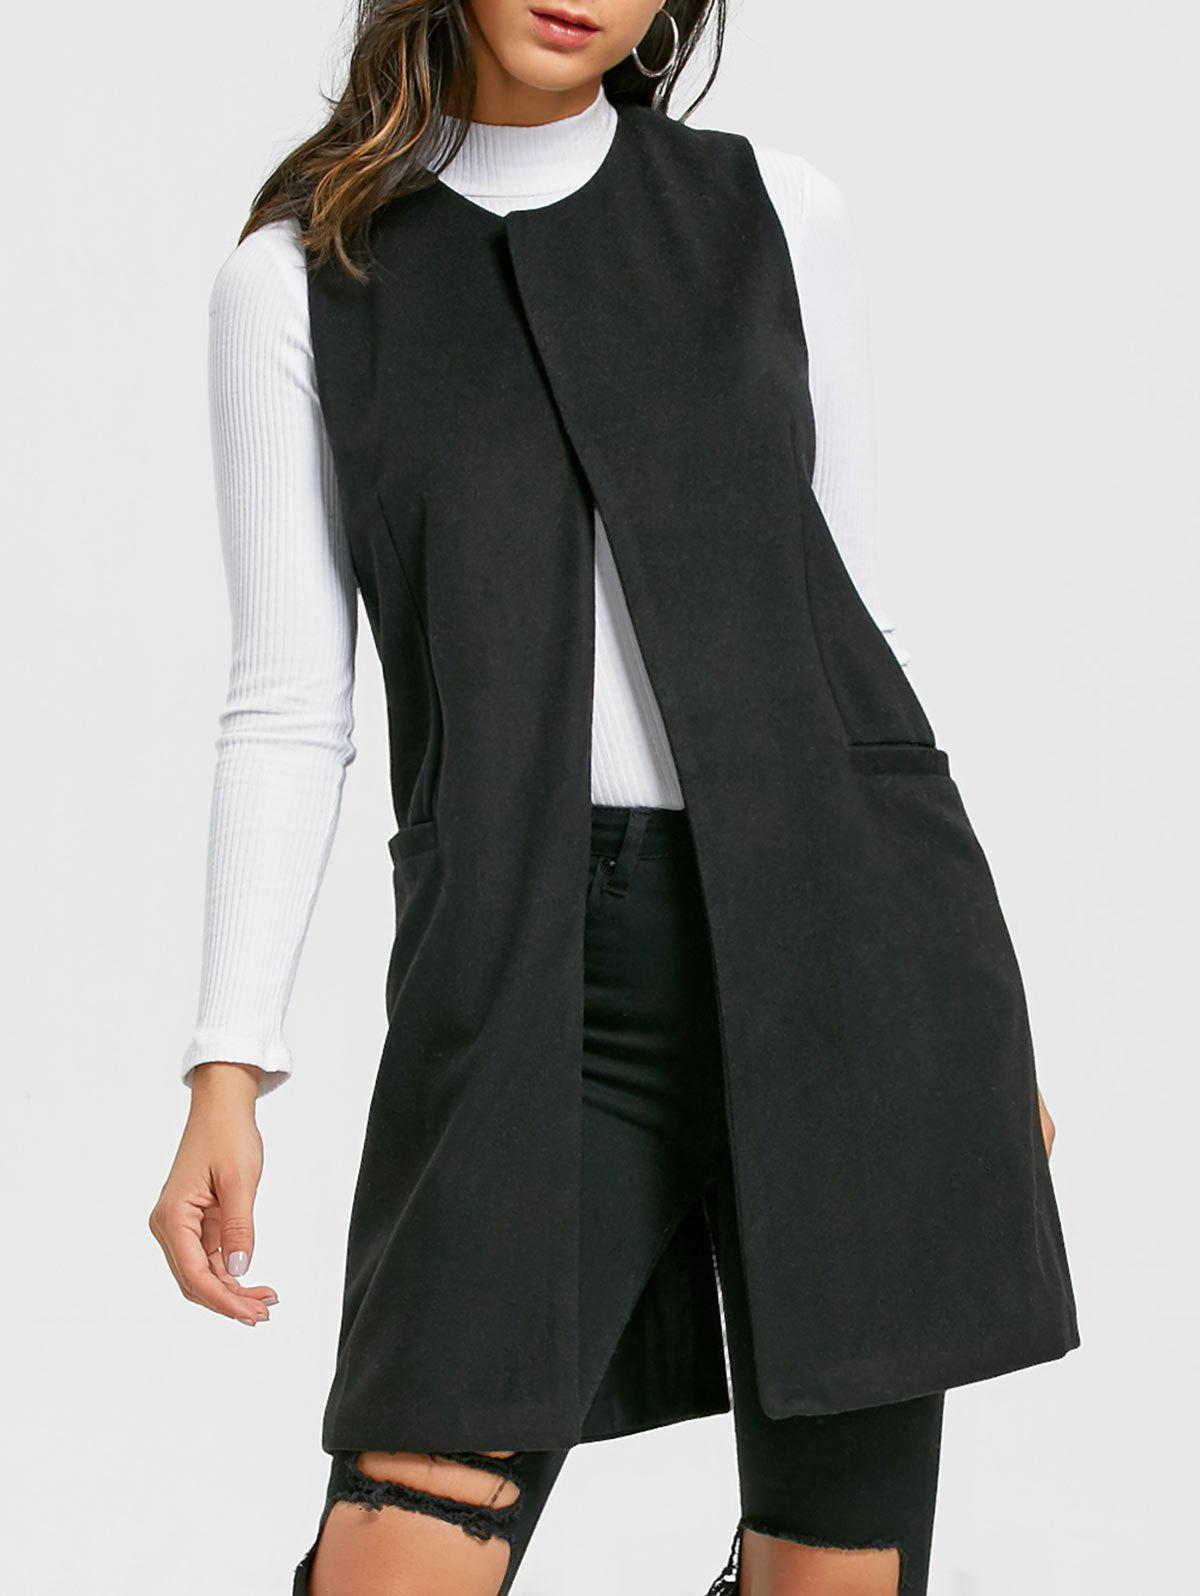 Side Pockets Back Slit Vest - BLACK S